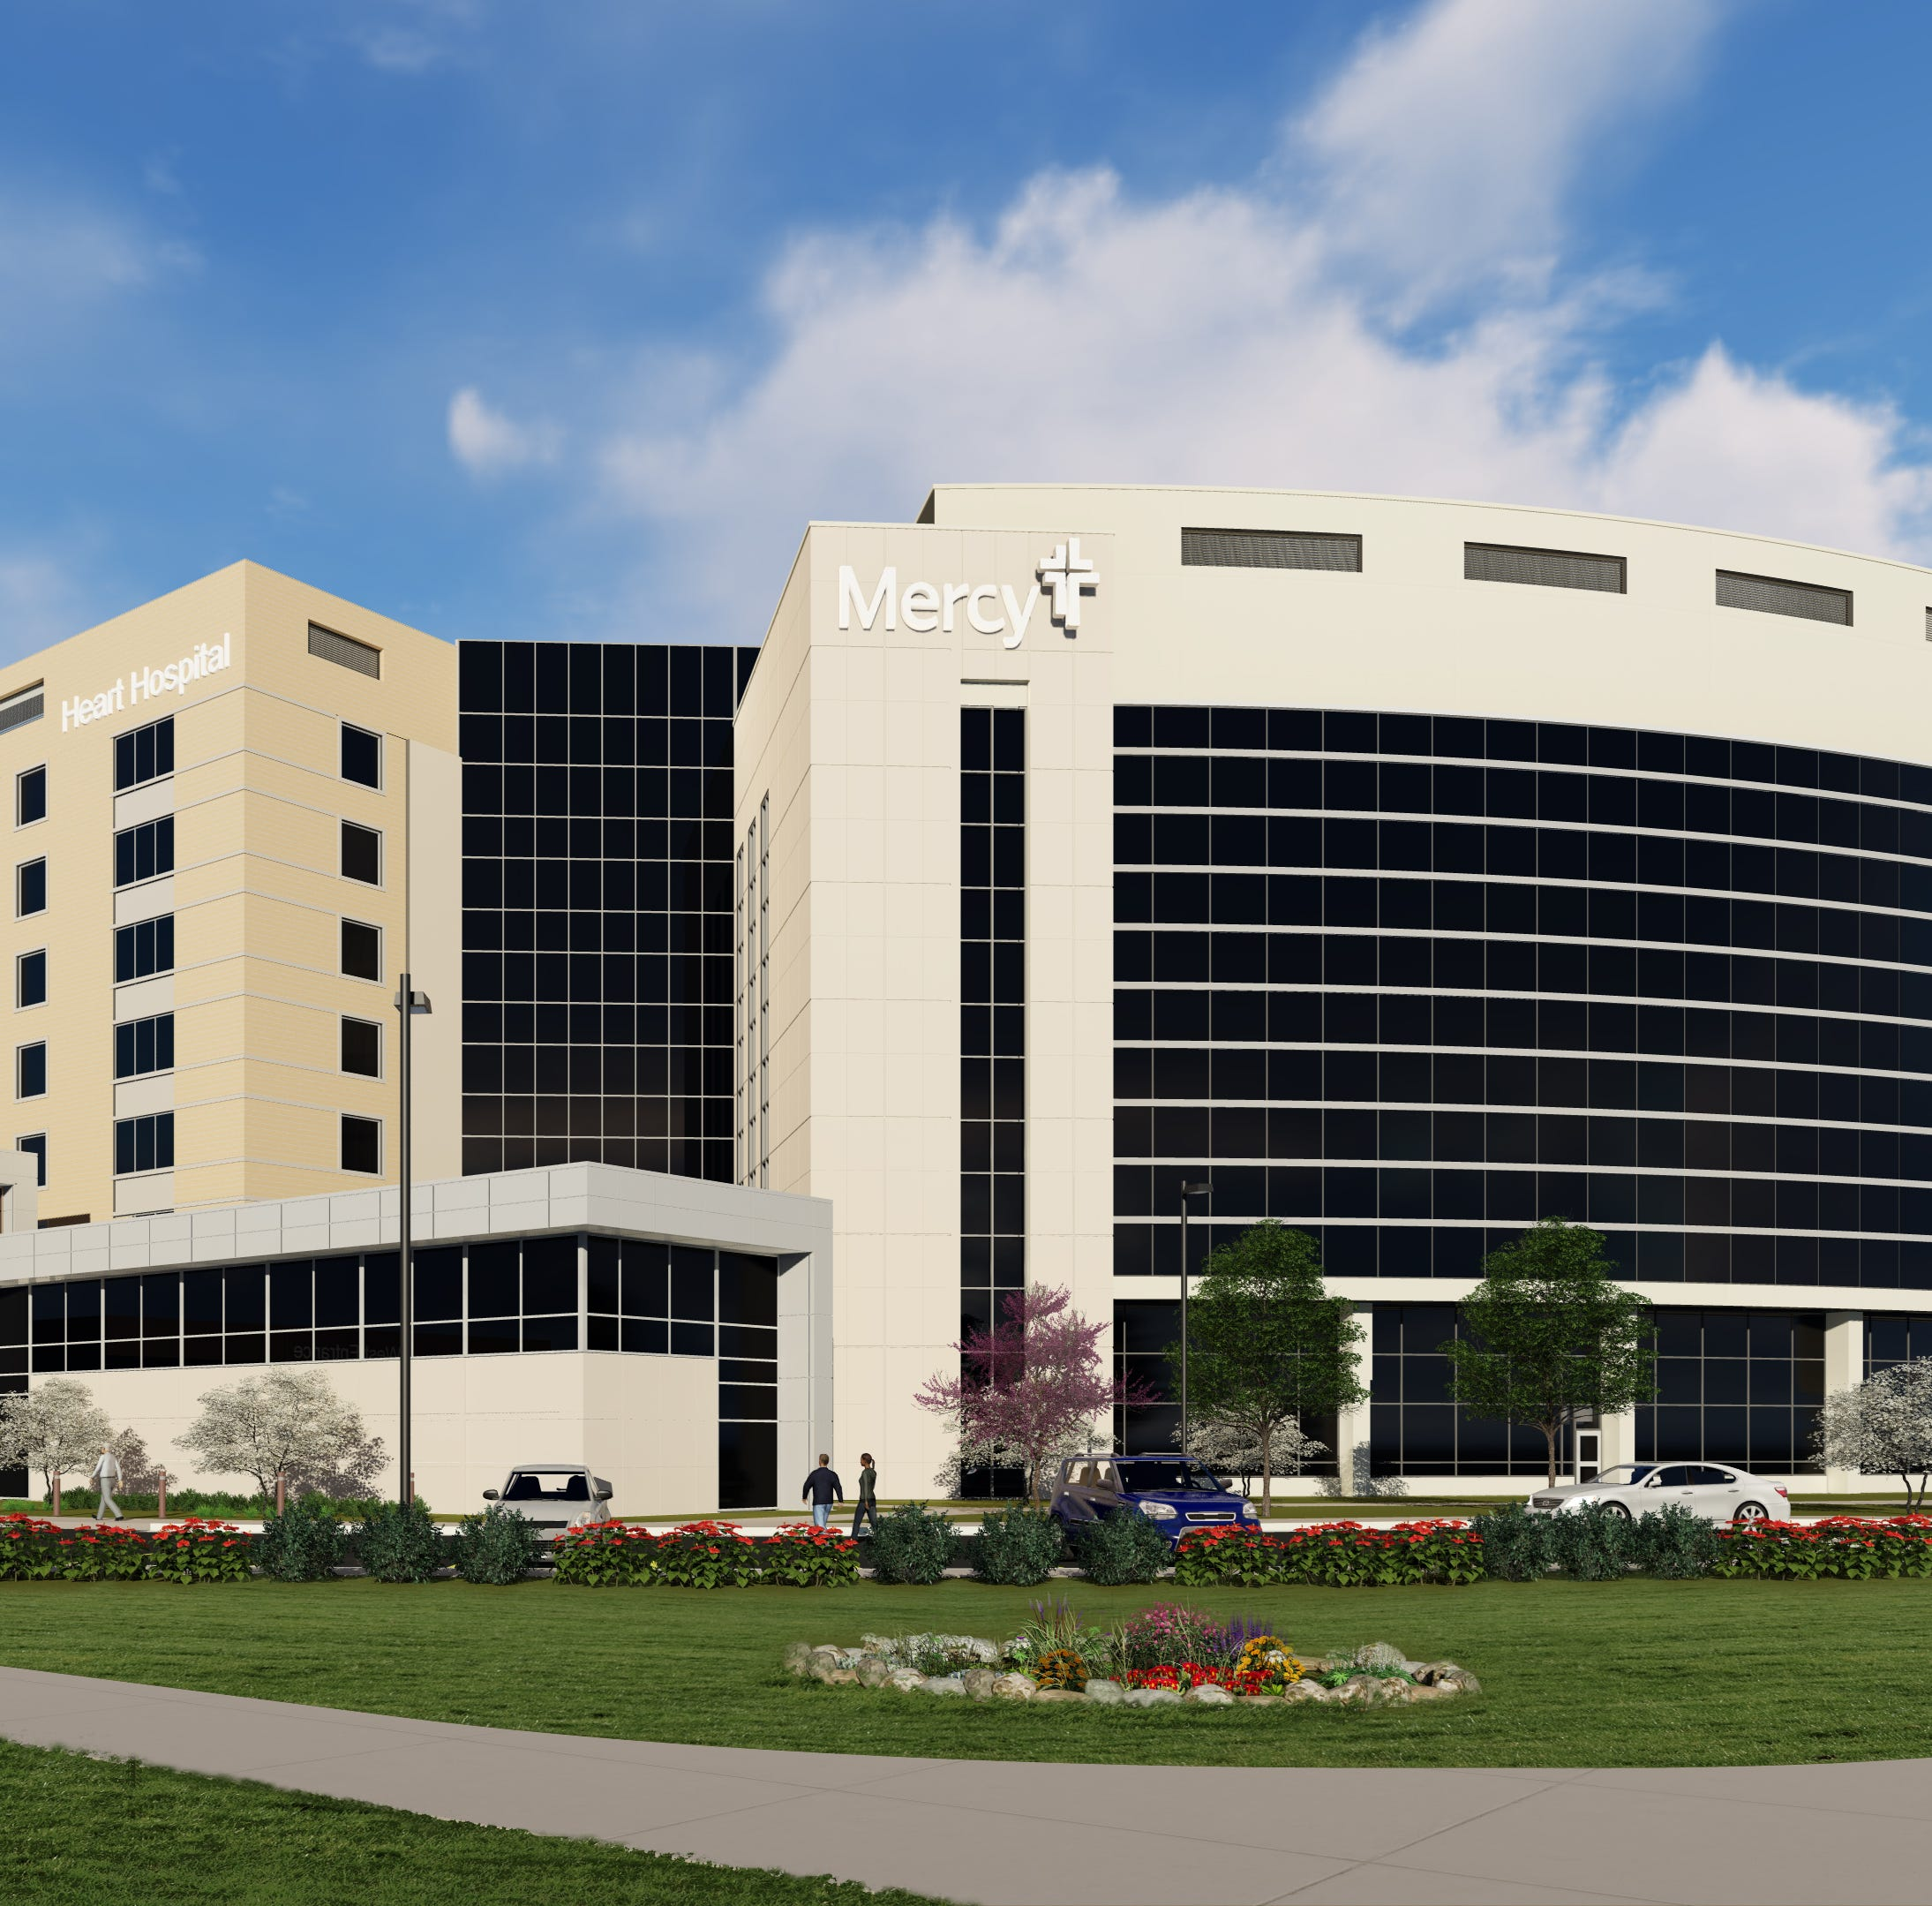 Mercy hospital receives 5-star rating from government